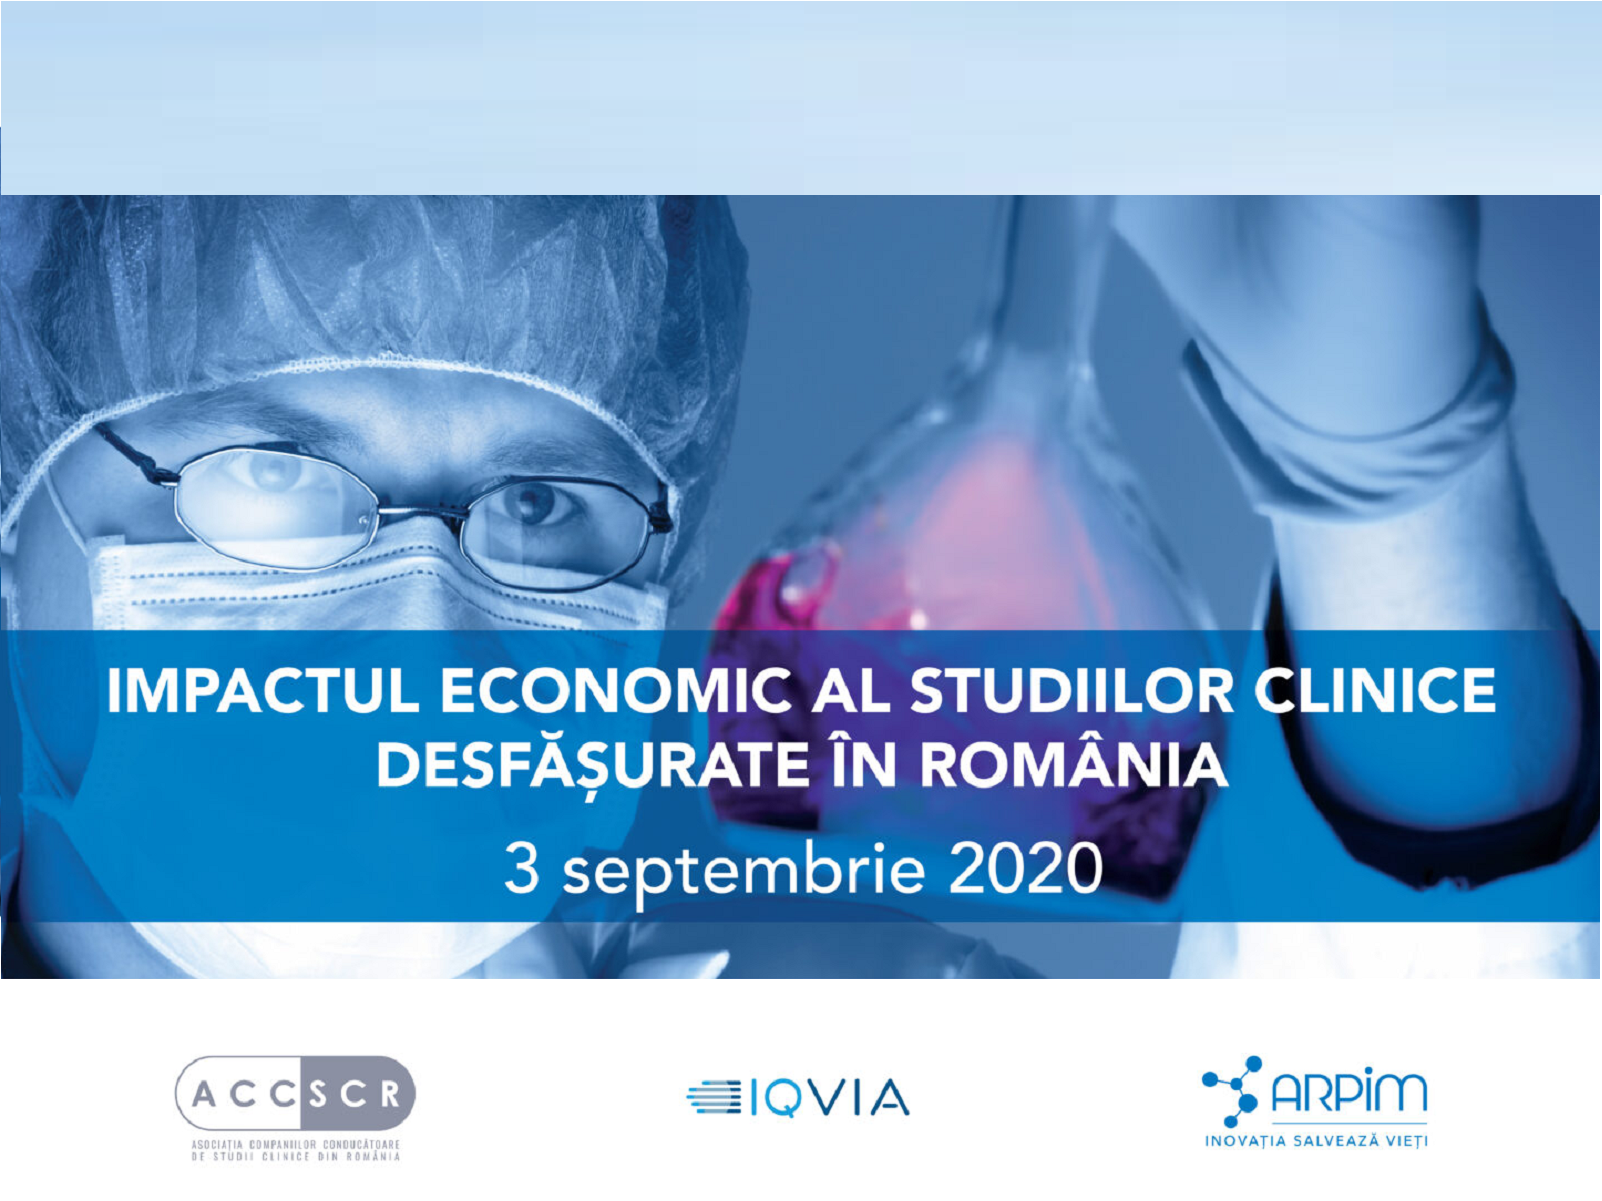 The economic impact of clinical trials conducted in Romania under the spotlight